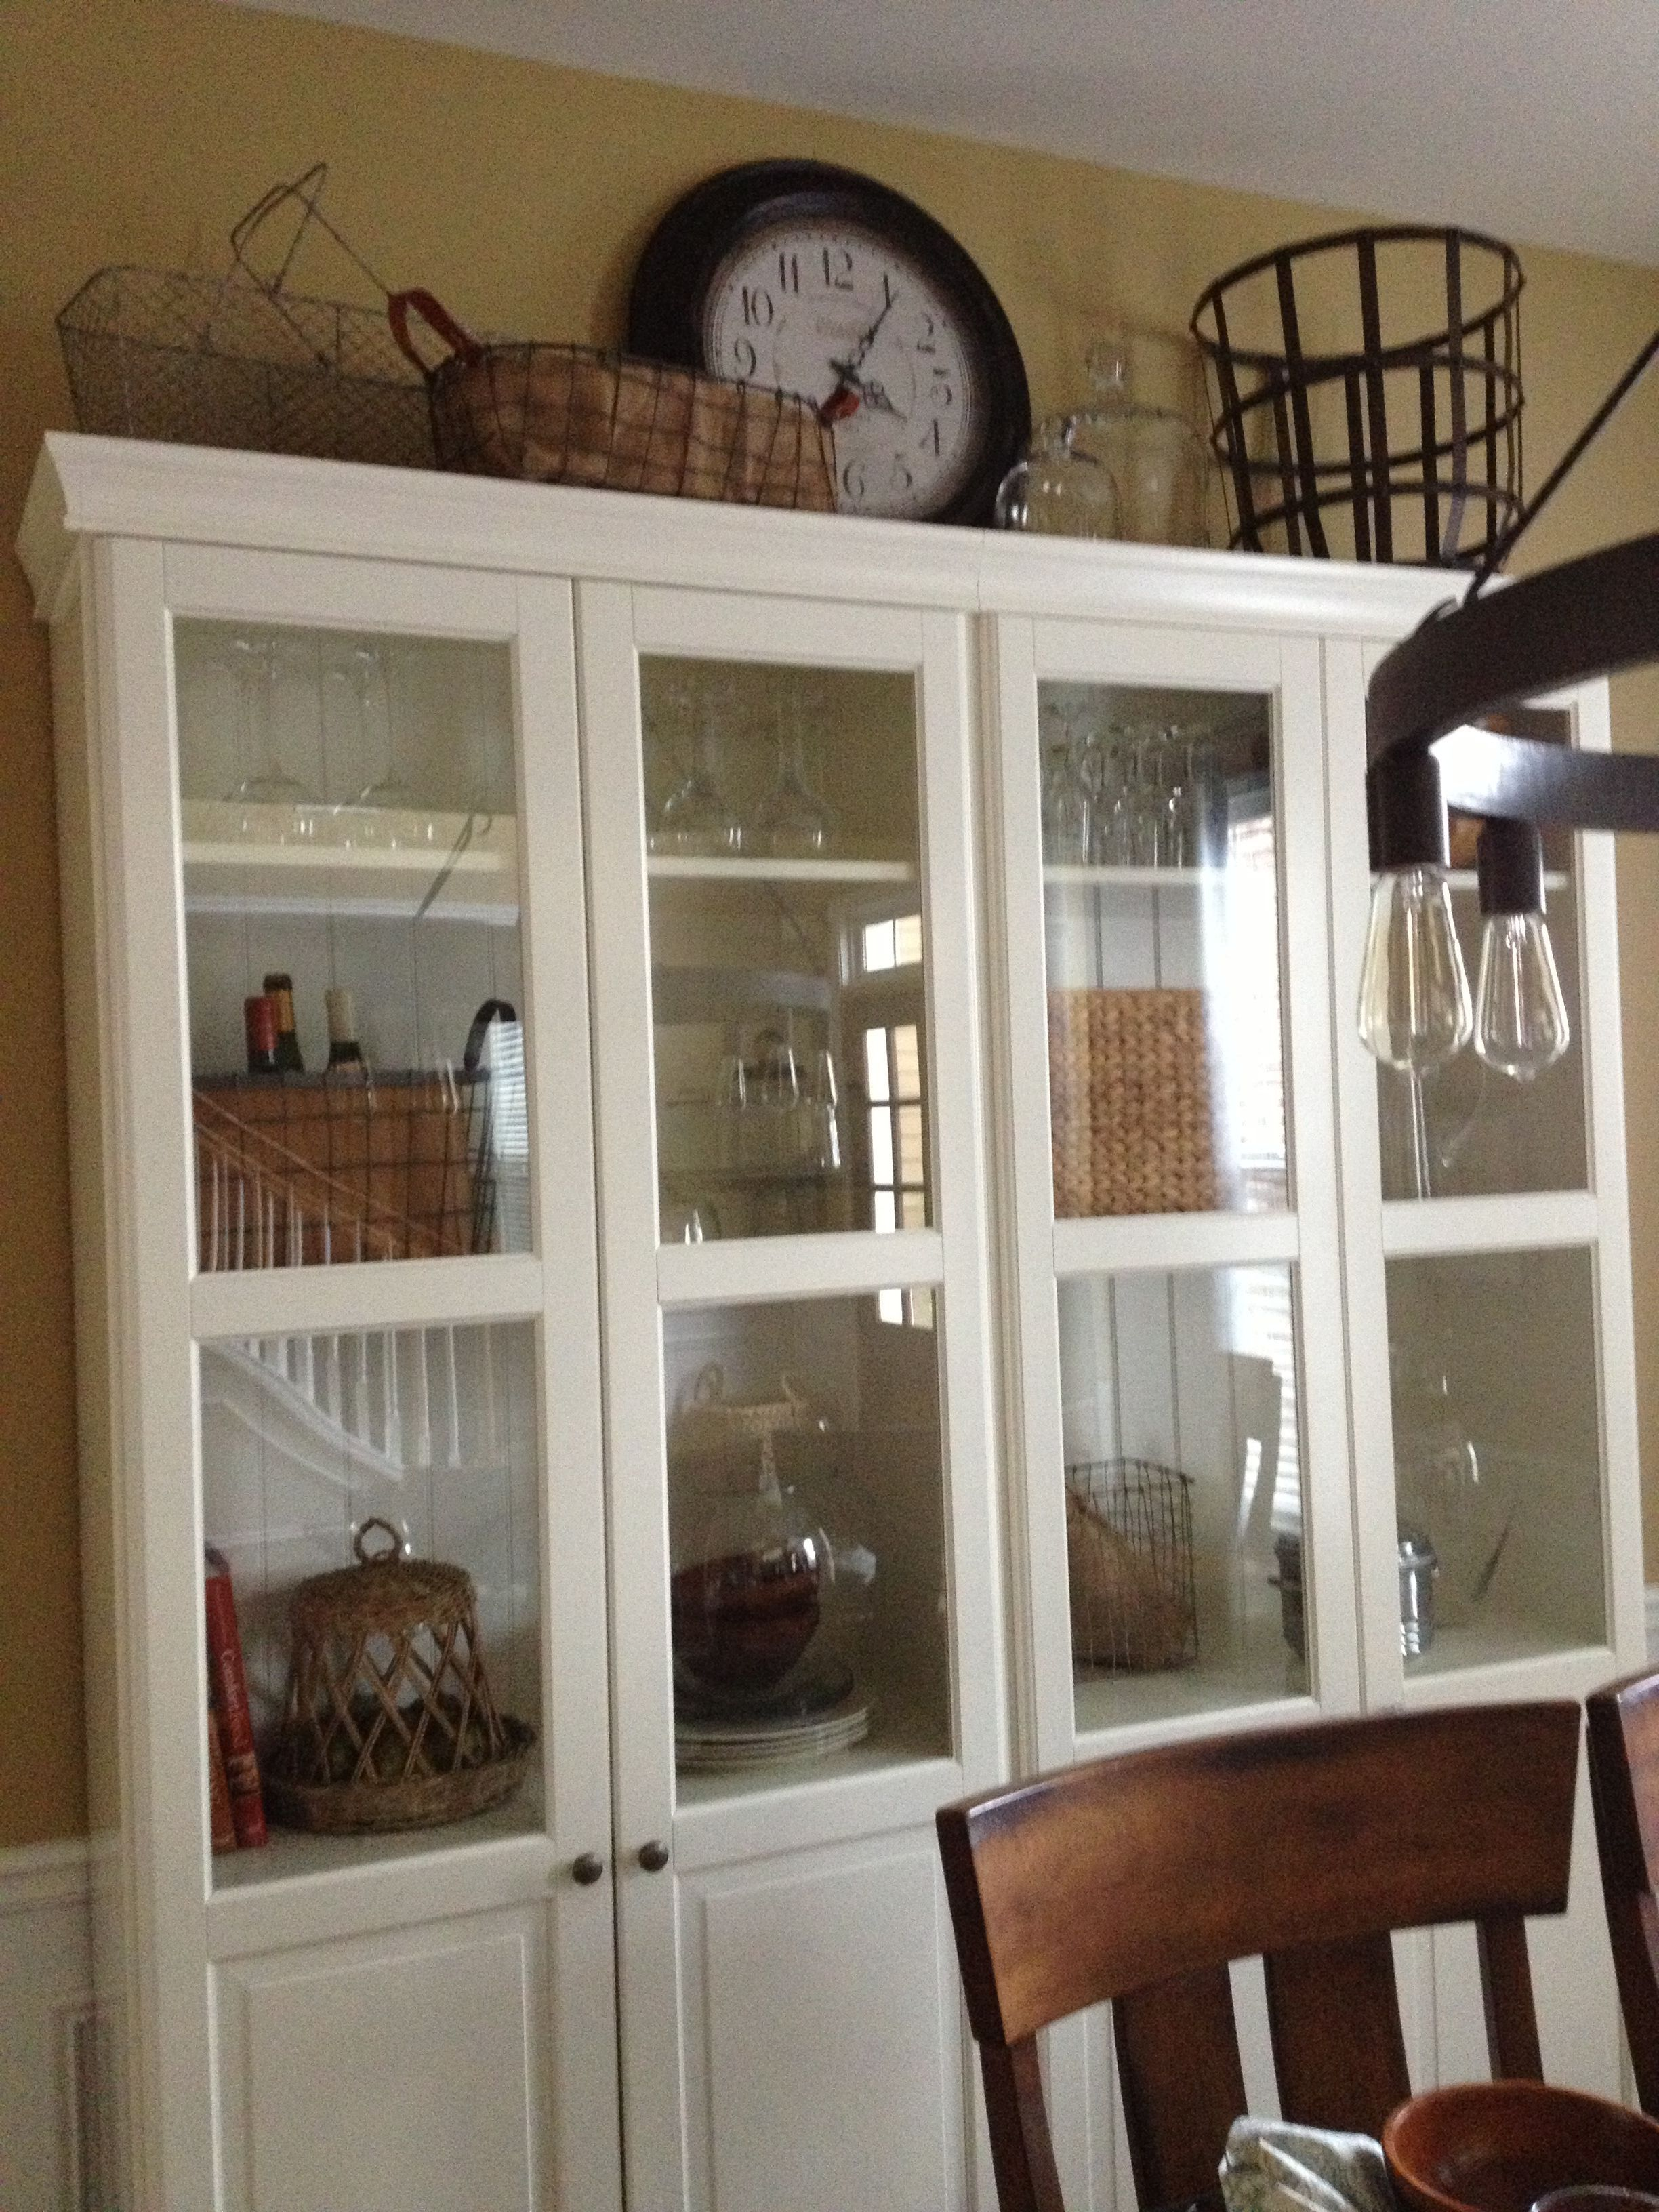 Dining Room China Cabinet Ideas 2021 Decor Traditional Furniture Layout